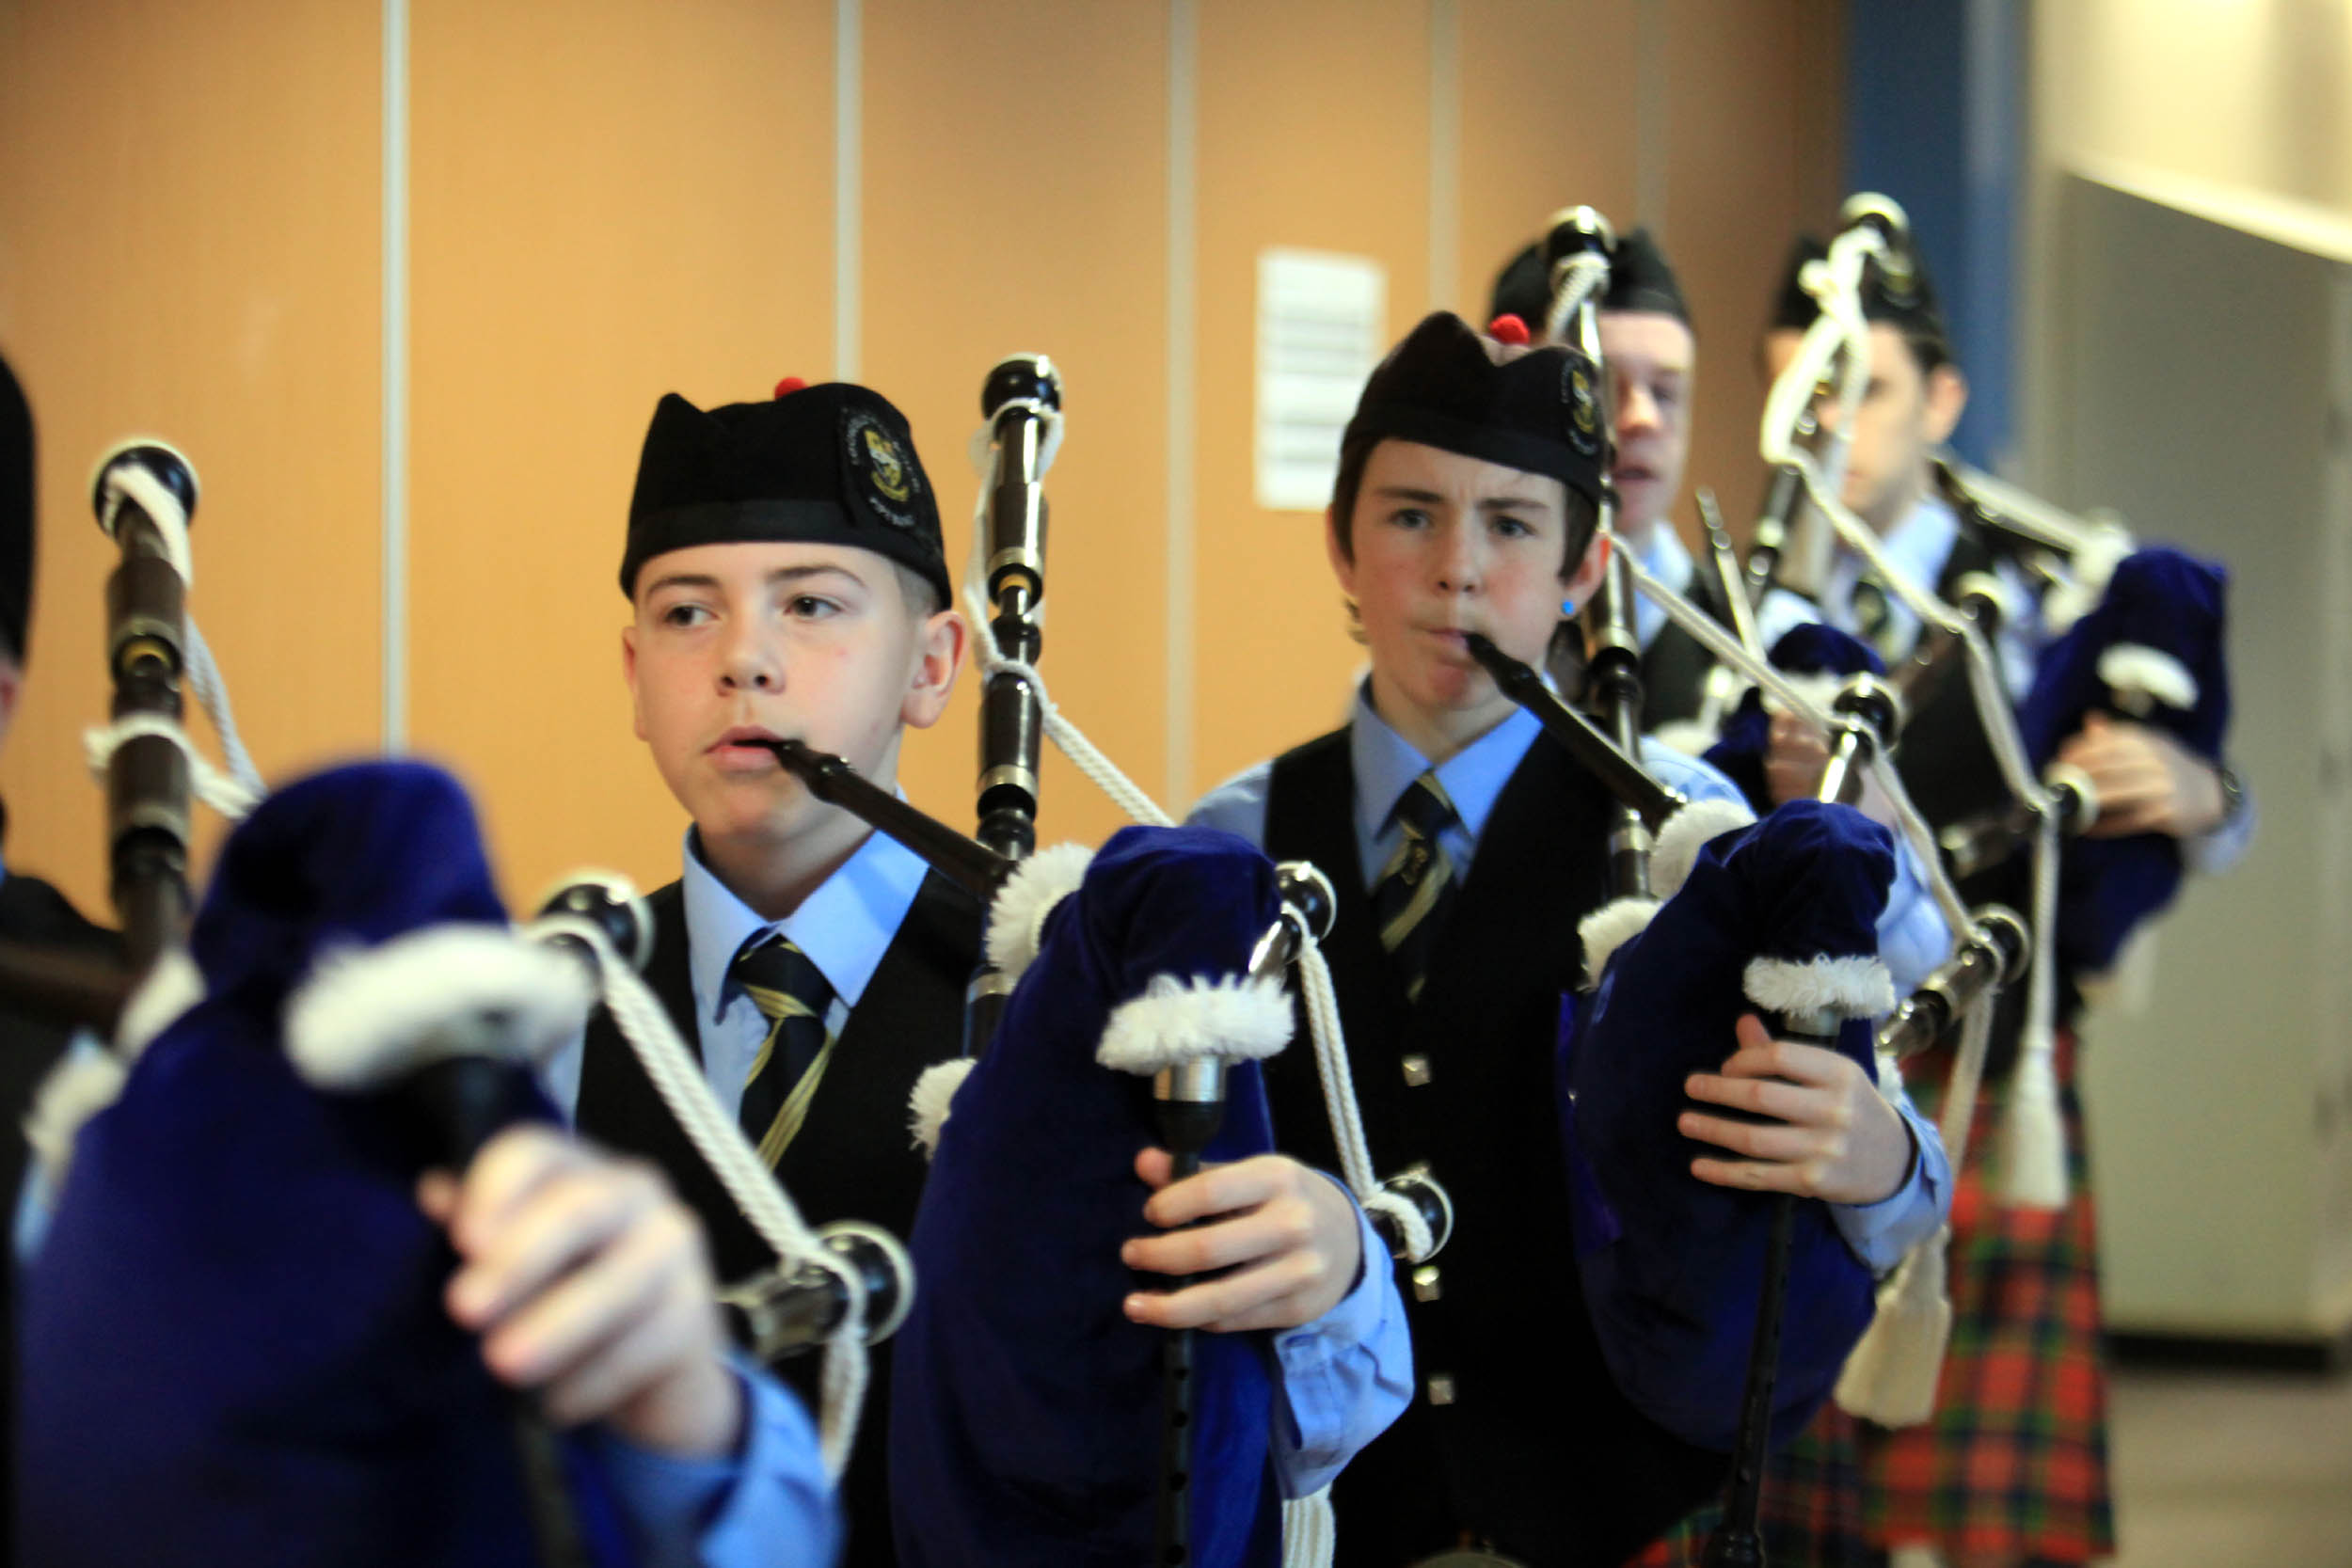 Bagpipe Under Threat Unless They Are Taught In School Say